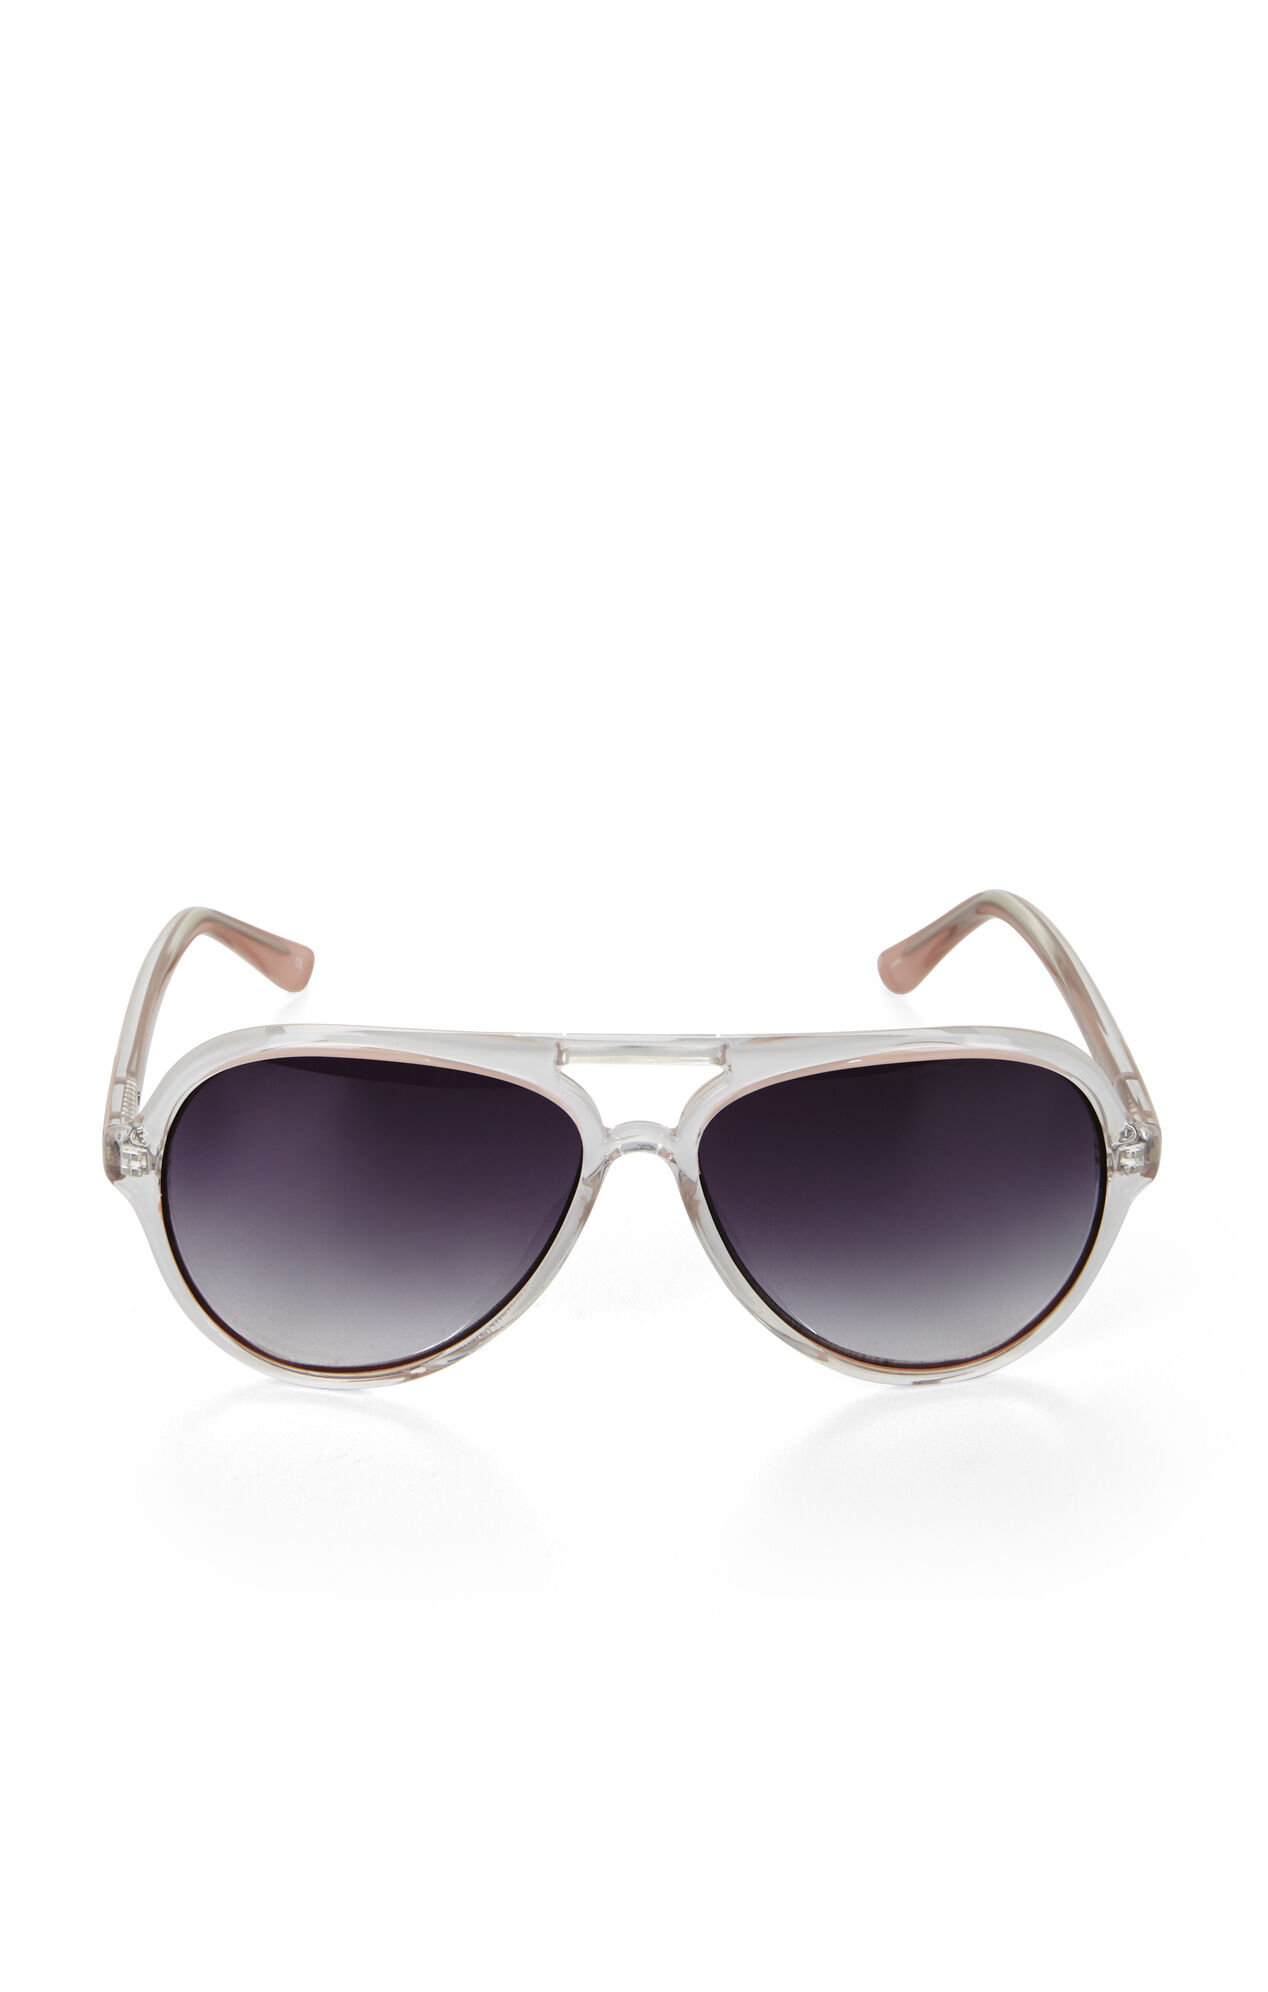 Clear Aviator Sunglasses